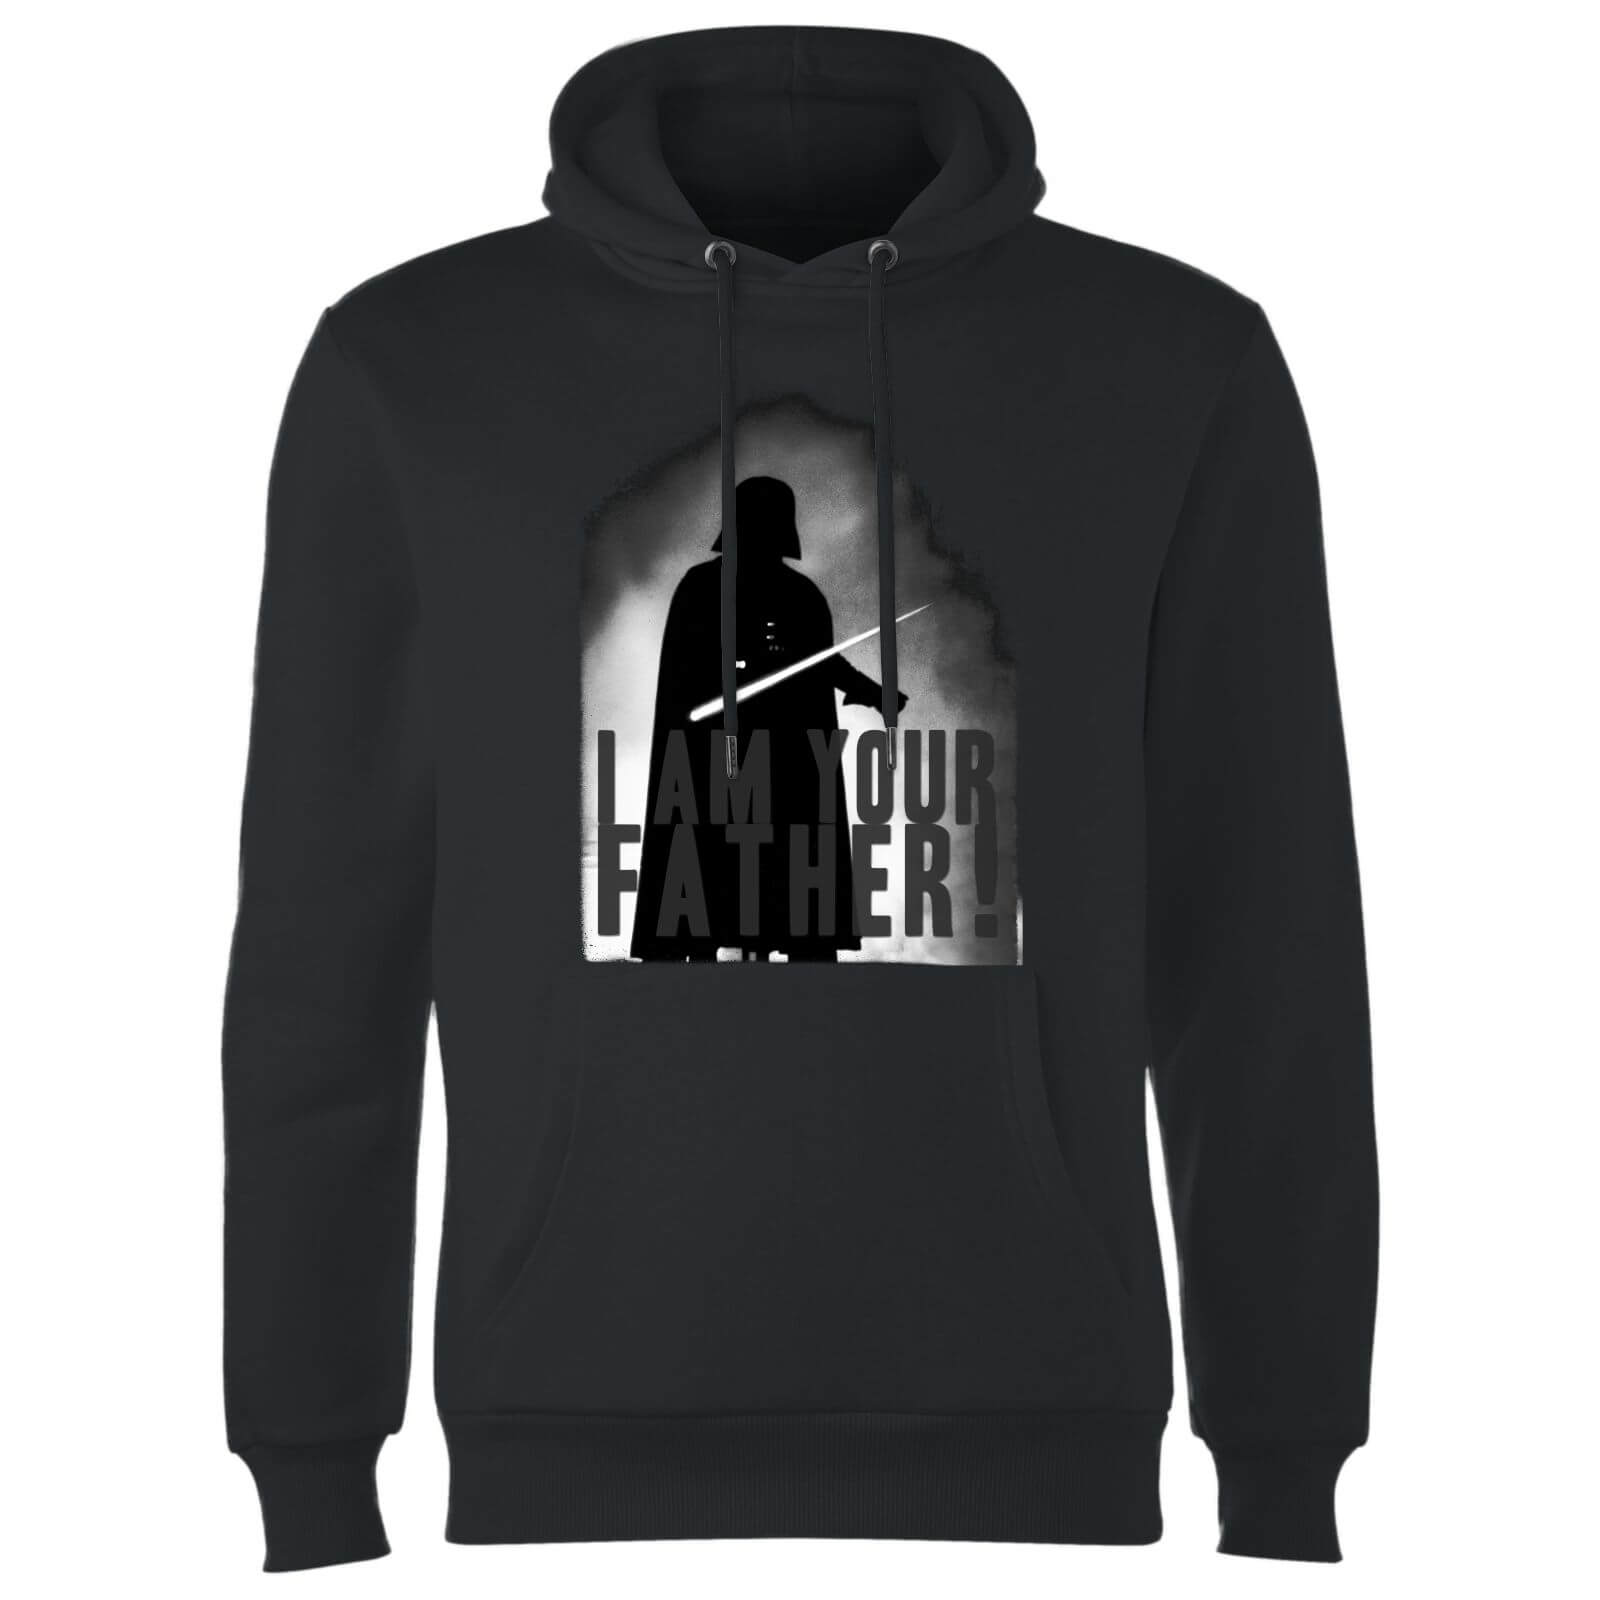 08ecc82d Star Wars Darth Vader I Am Your Father Silhouette Hoodie - Black Clothing |  Zavvi